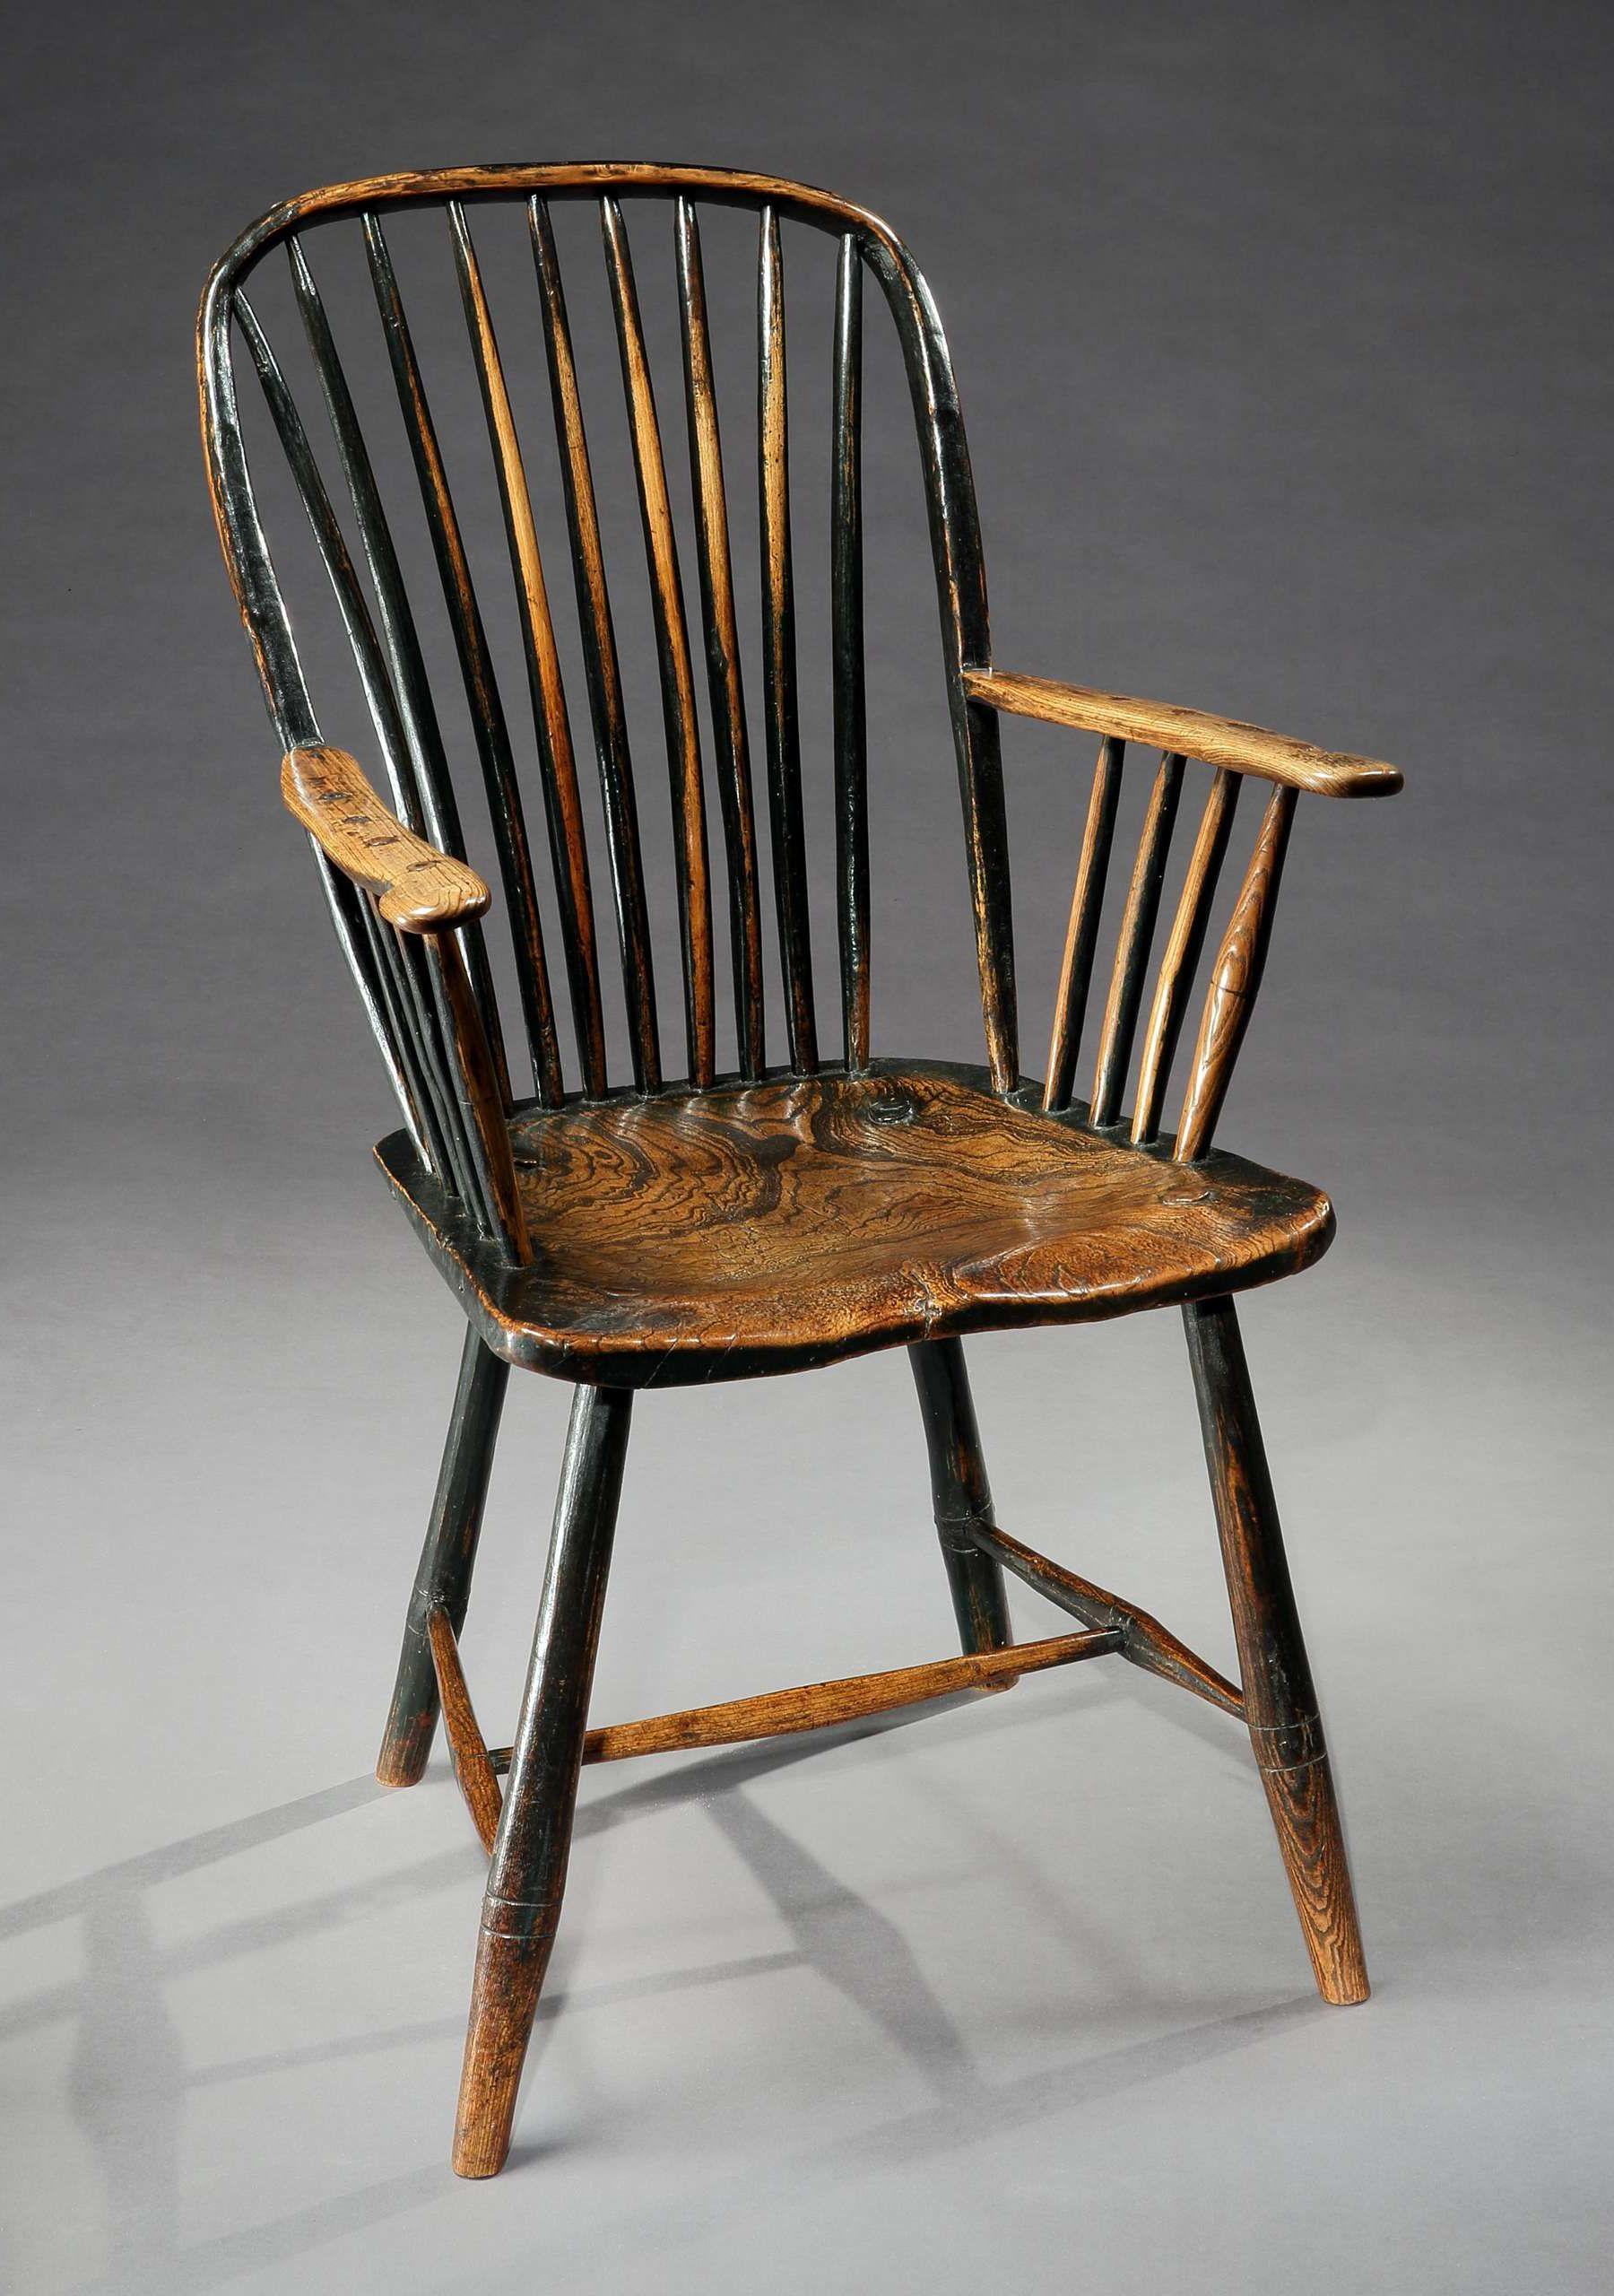 diy painted windsor chairs stretch chair covers for sale picture this lxxiii pegs and 39tails